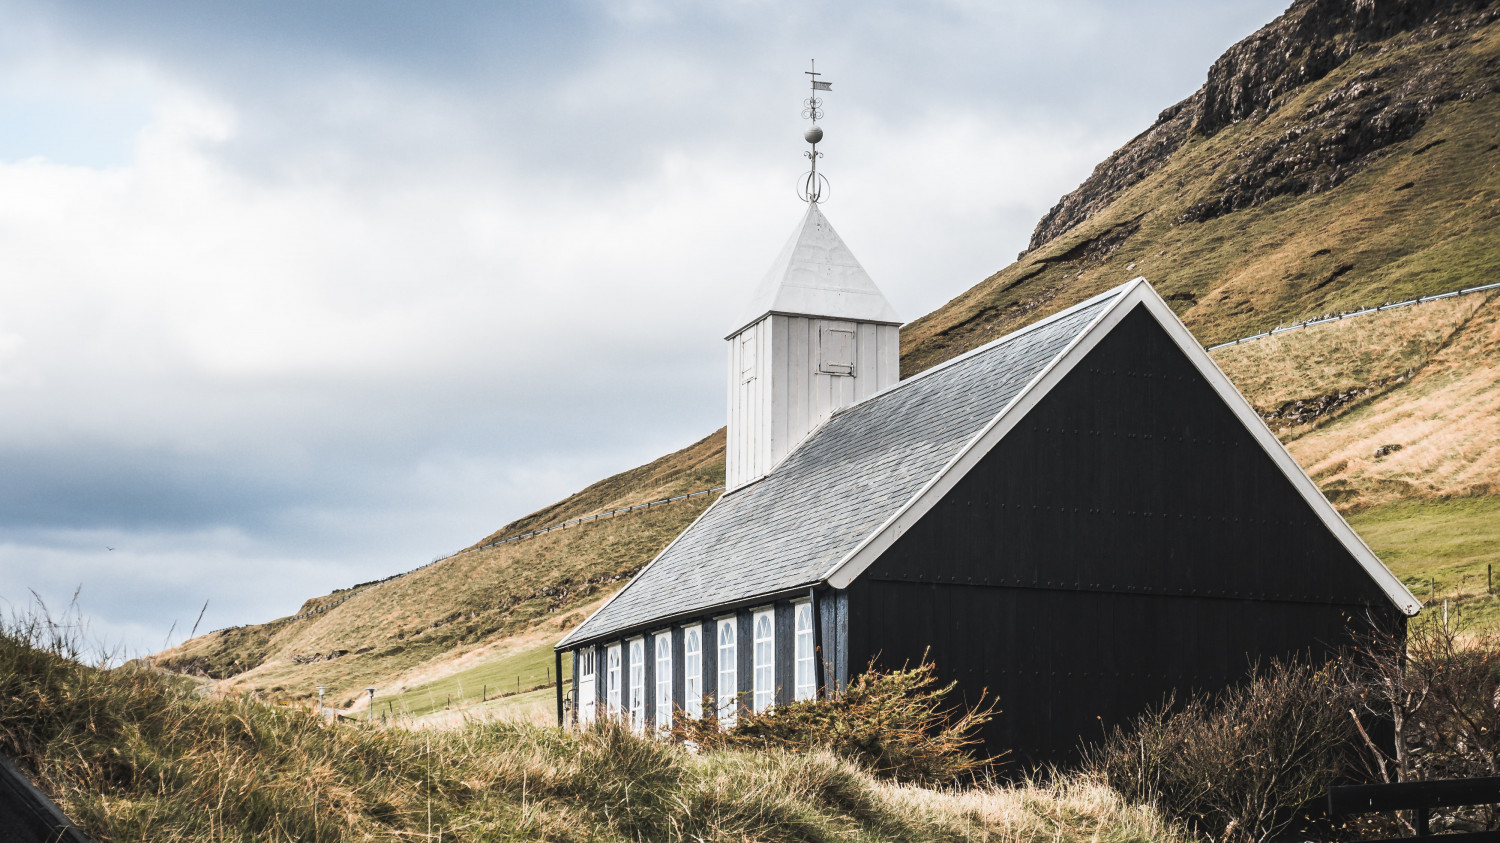 Image of a single storey church on a hillside